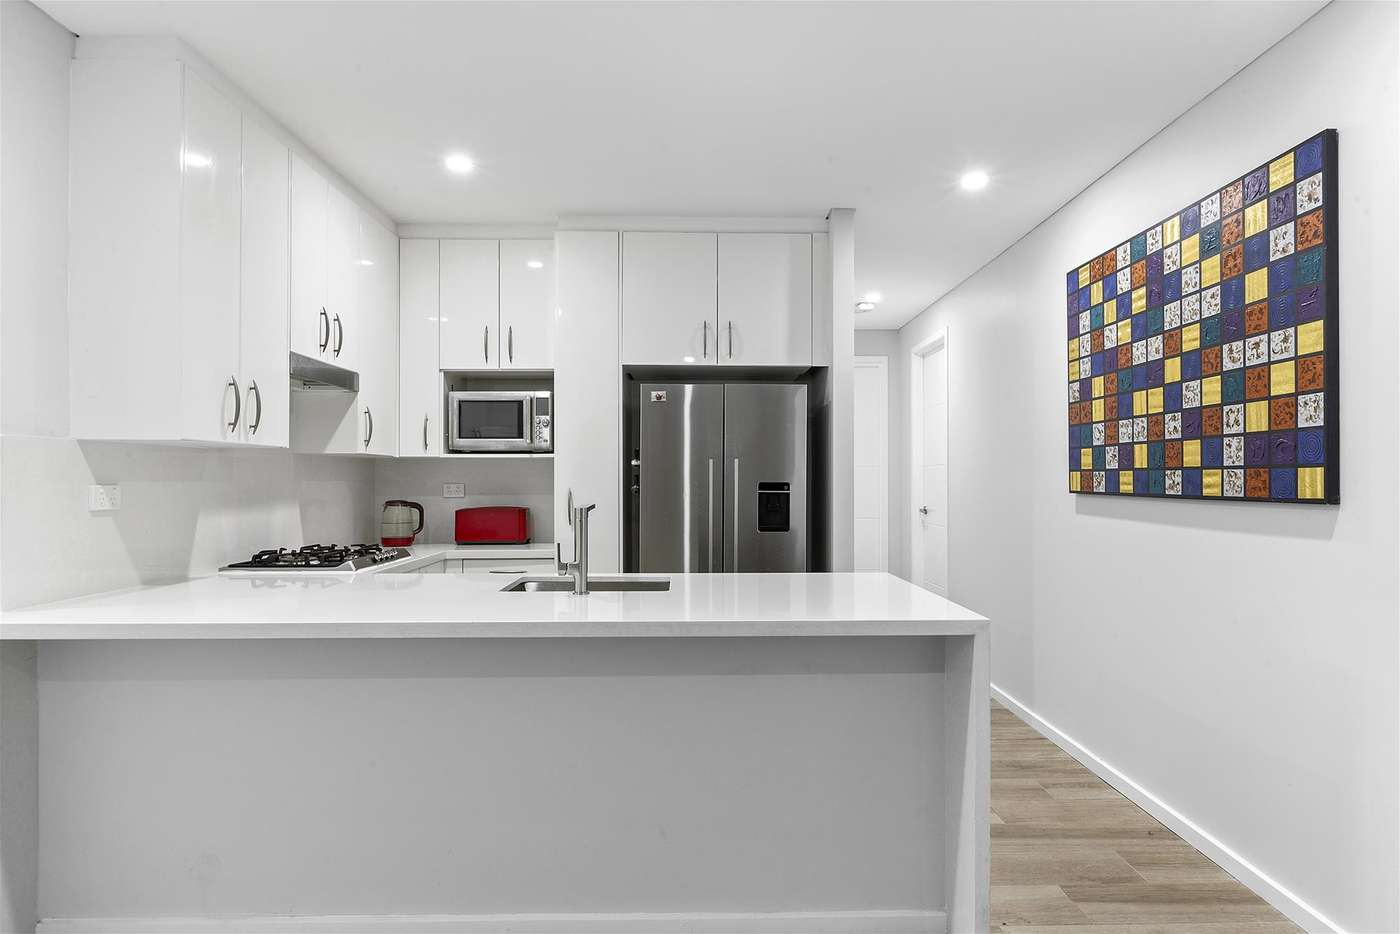 Main view of Homely apartment listing, 525/7 Potter Street, Waterloo NSW 2017